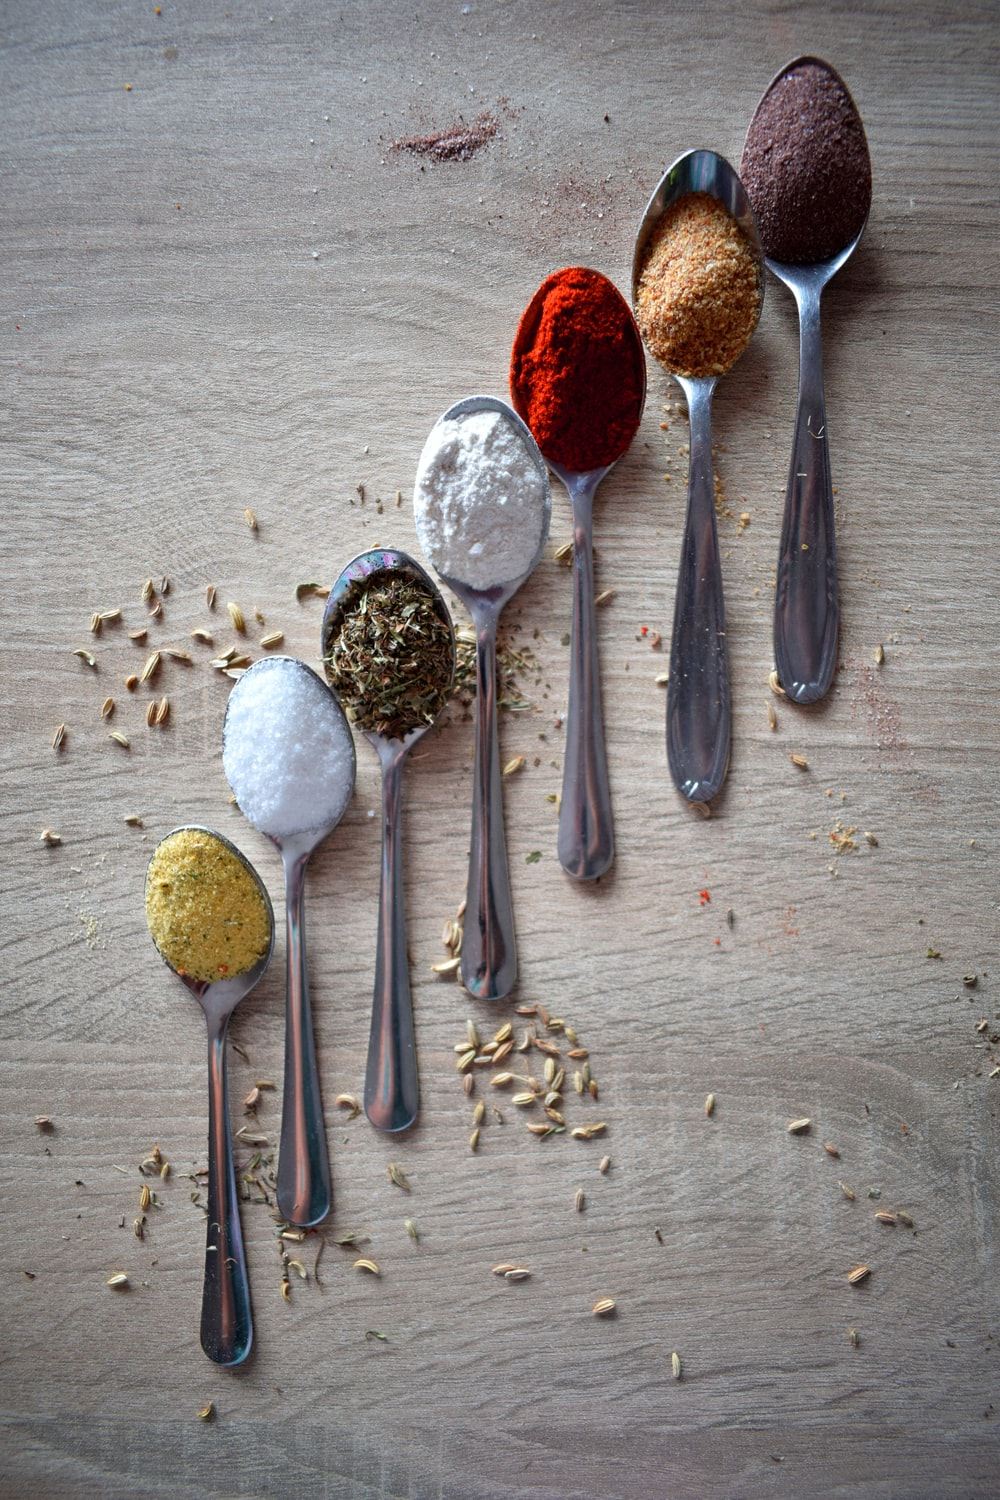 stainless steel spoons and spices on gray wooden table